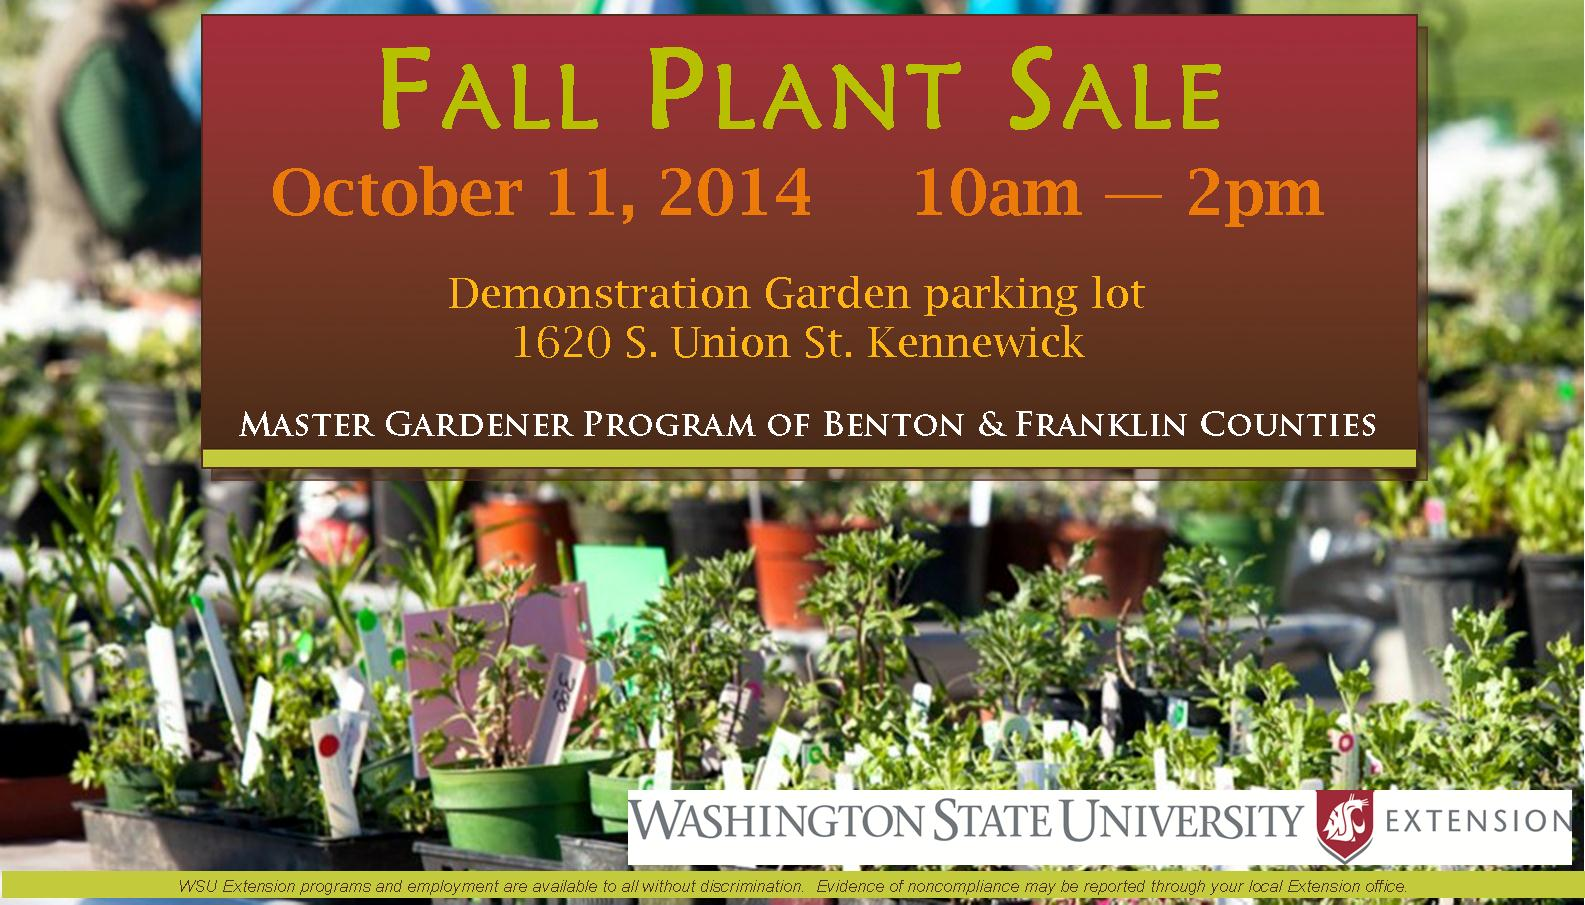 Fall Plant Sale 1 Graphic | Benton & Franklin Counties | Washington ...